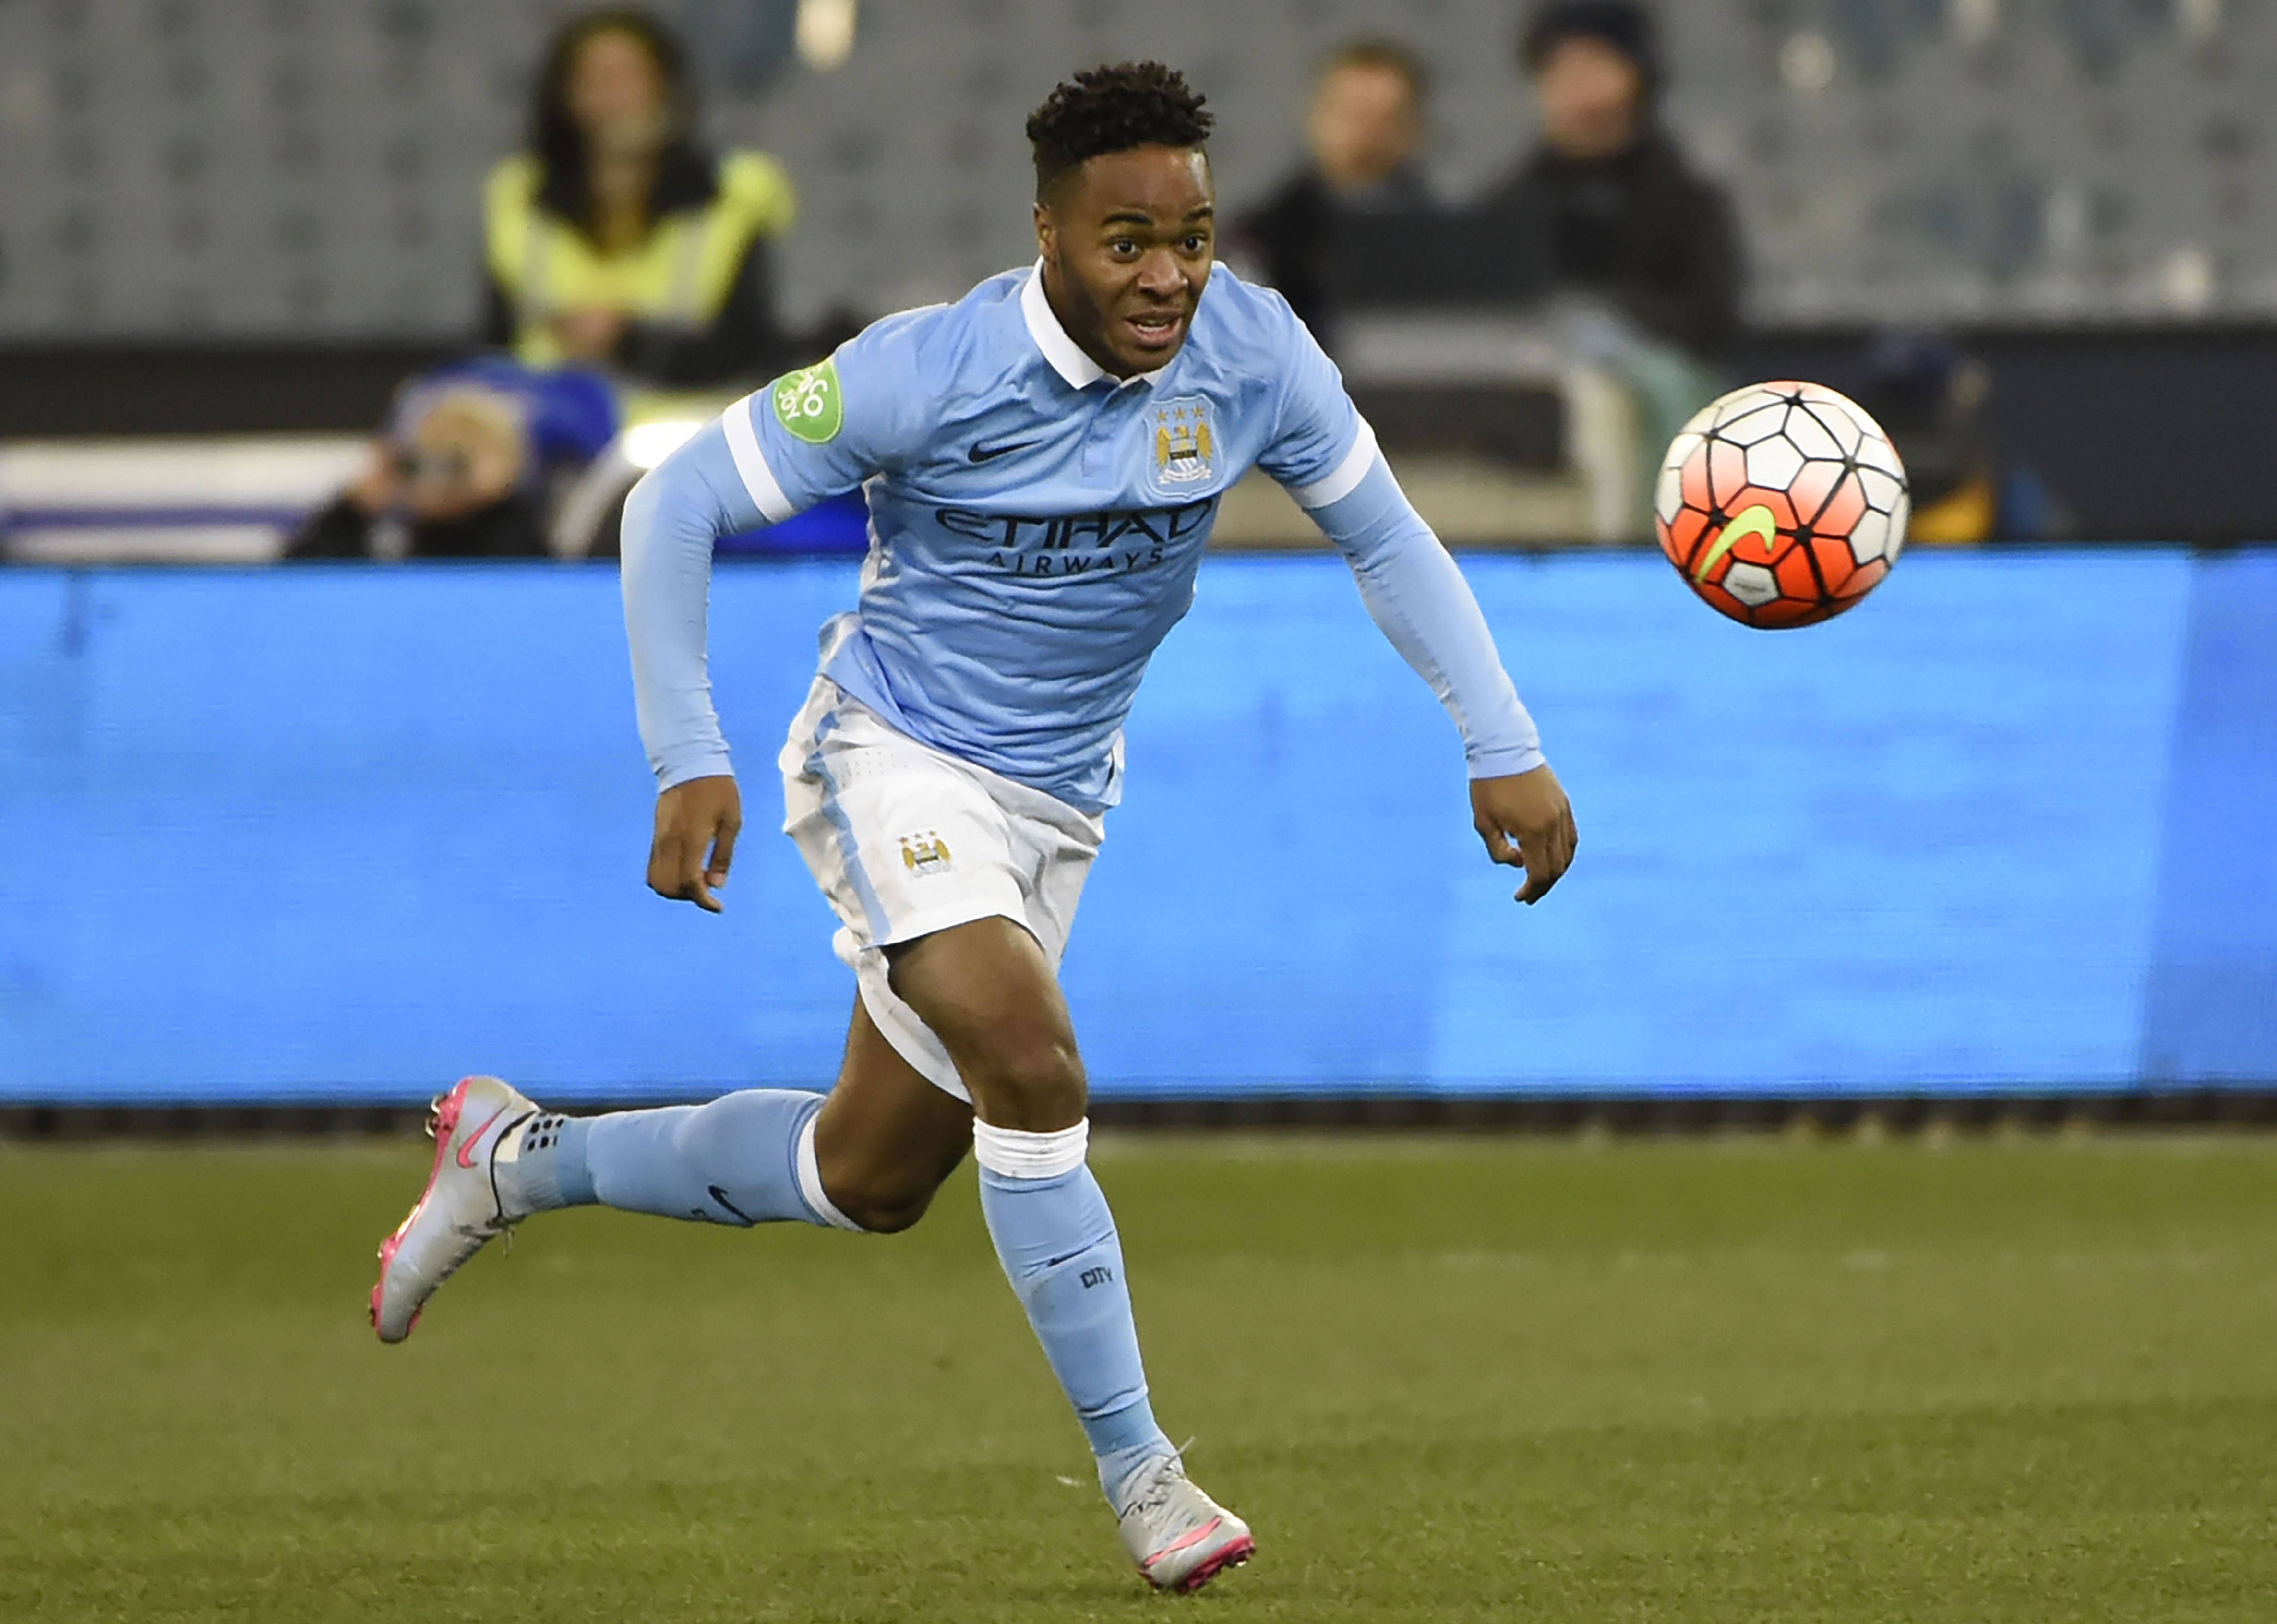 Manchester Cityu2019s Raheem Sterling in action against Roma during the International Champions Cup in Melbourne on Tuesday. Photo: AFP